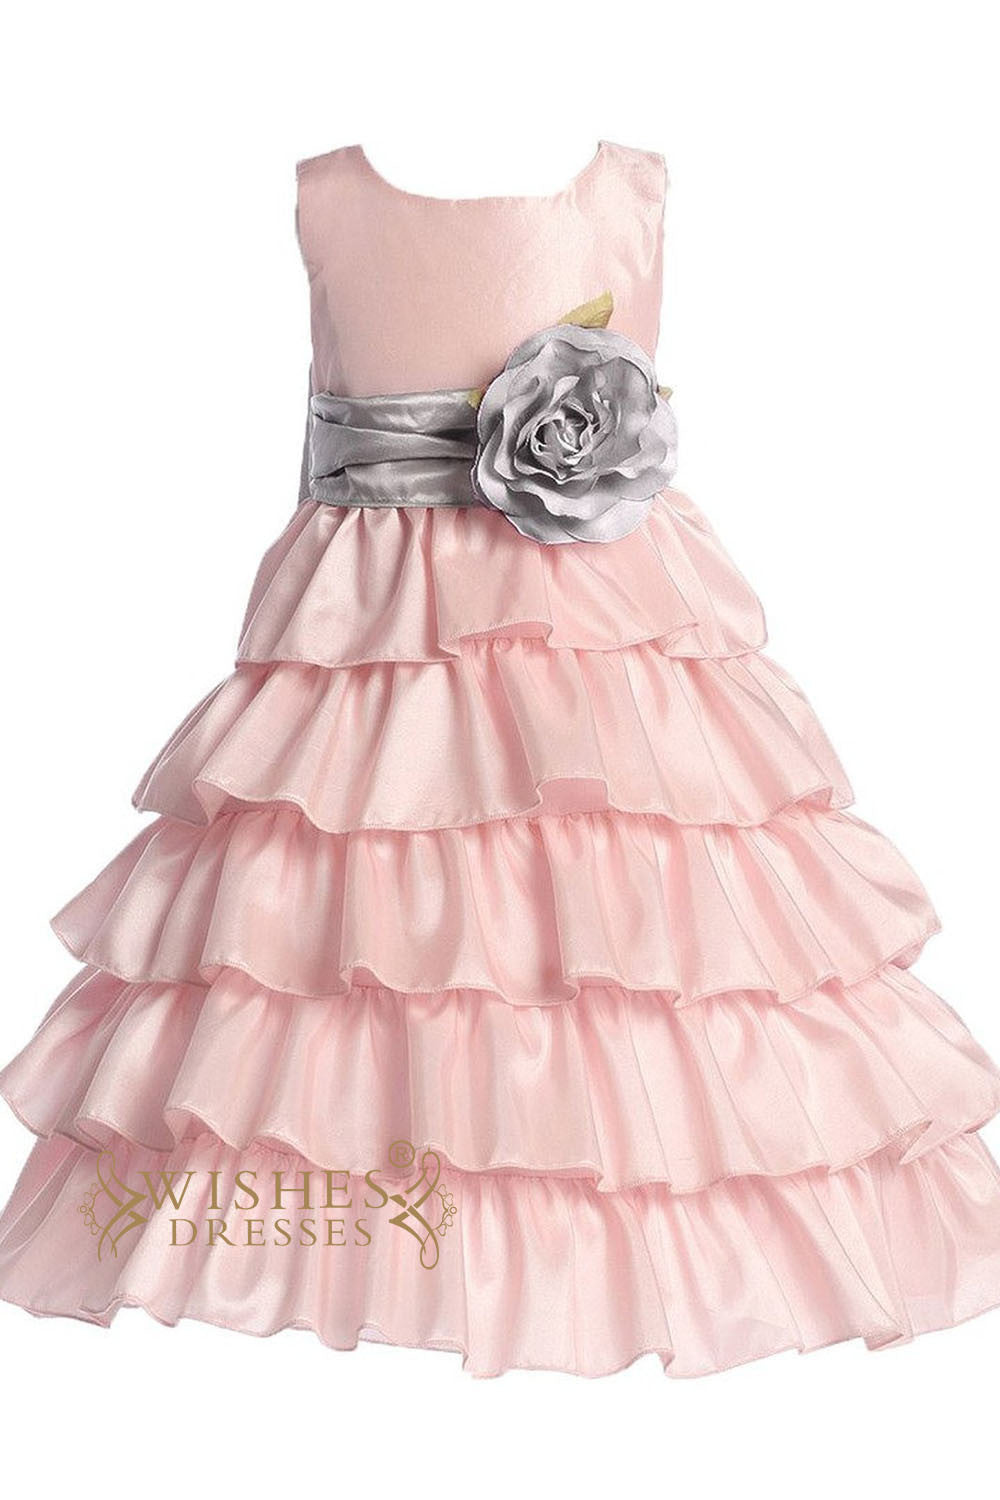 Flower girl dresses cute baby skirt with sash flower girl dresses am217 izmirmasajfo Image collections